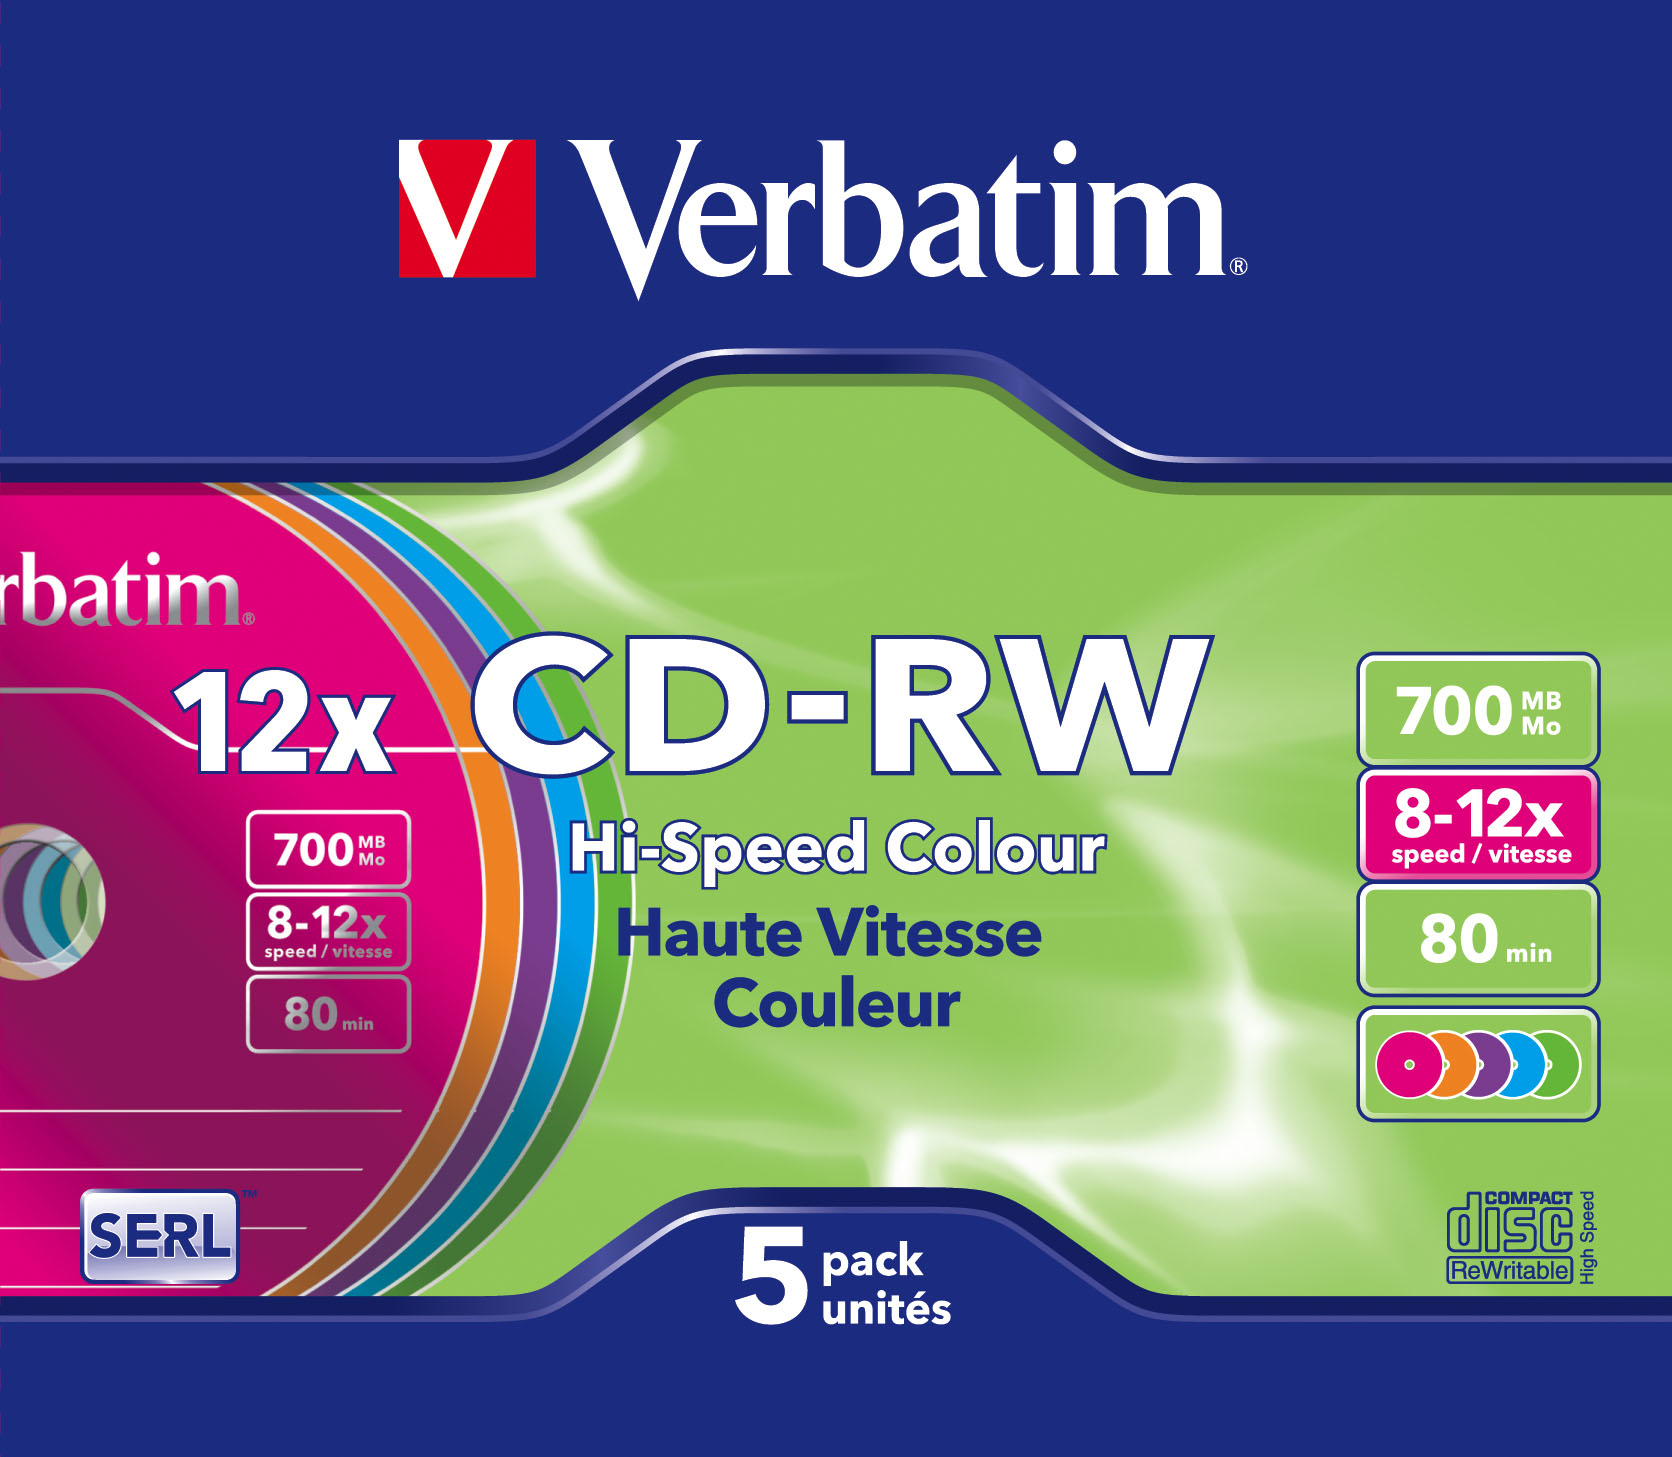 Verbatim CD-RW Colour 12x 700 MB 5 pc(s)